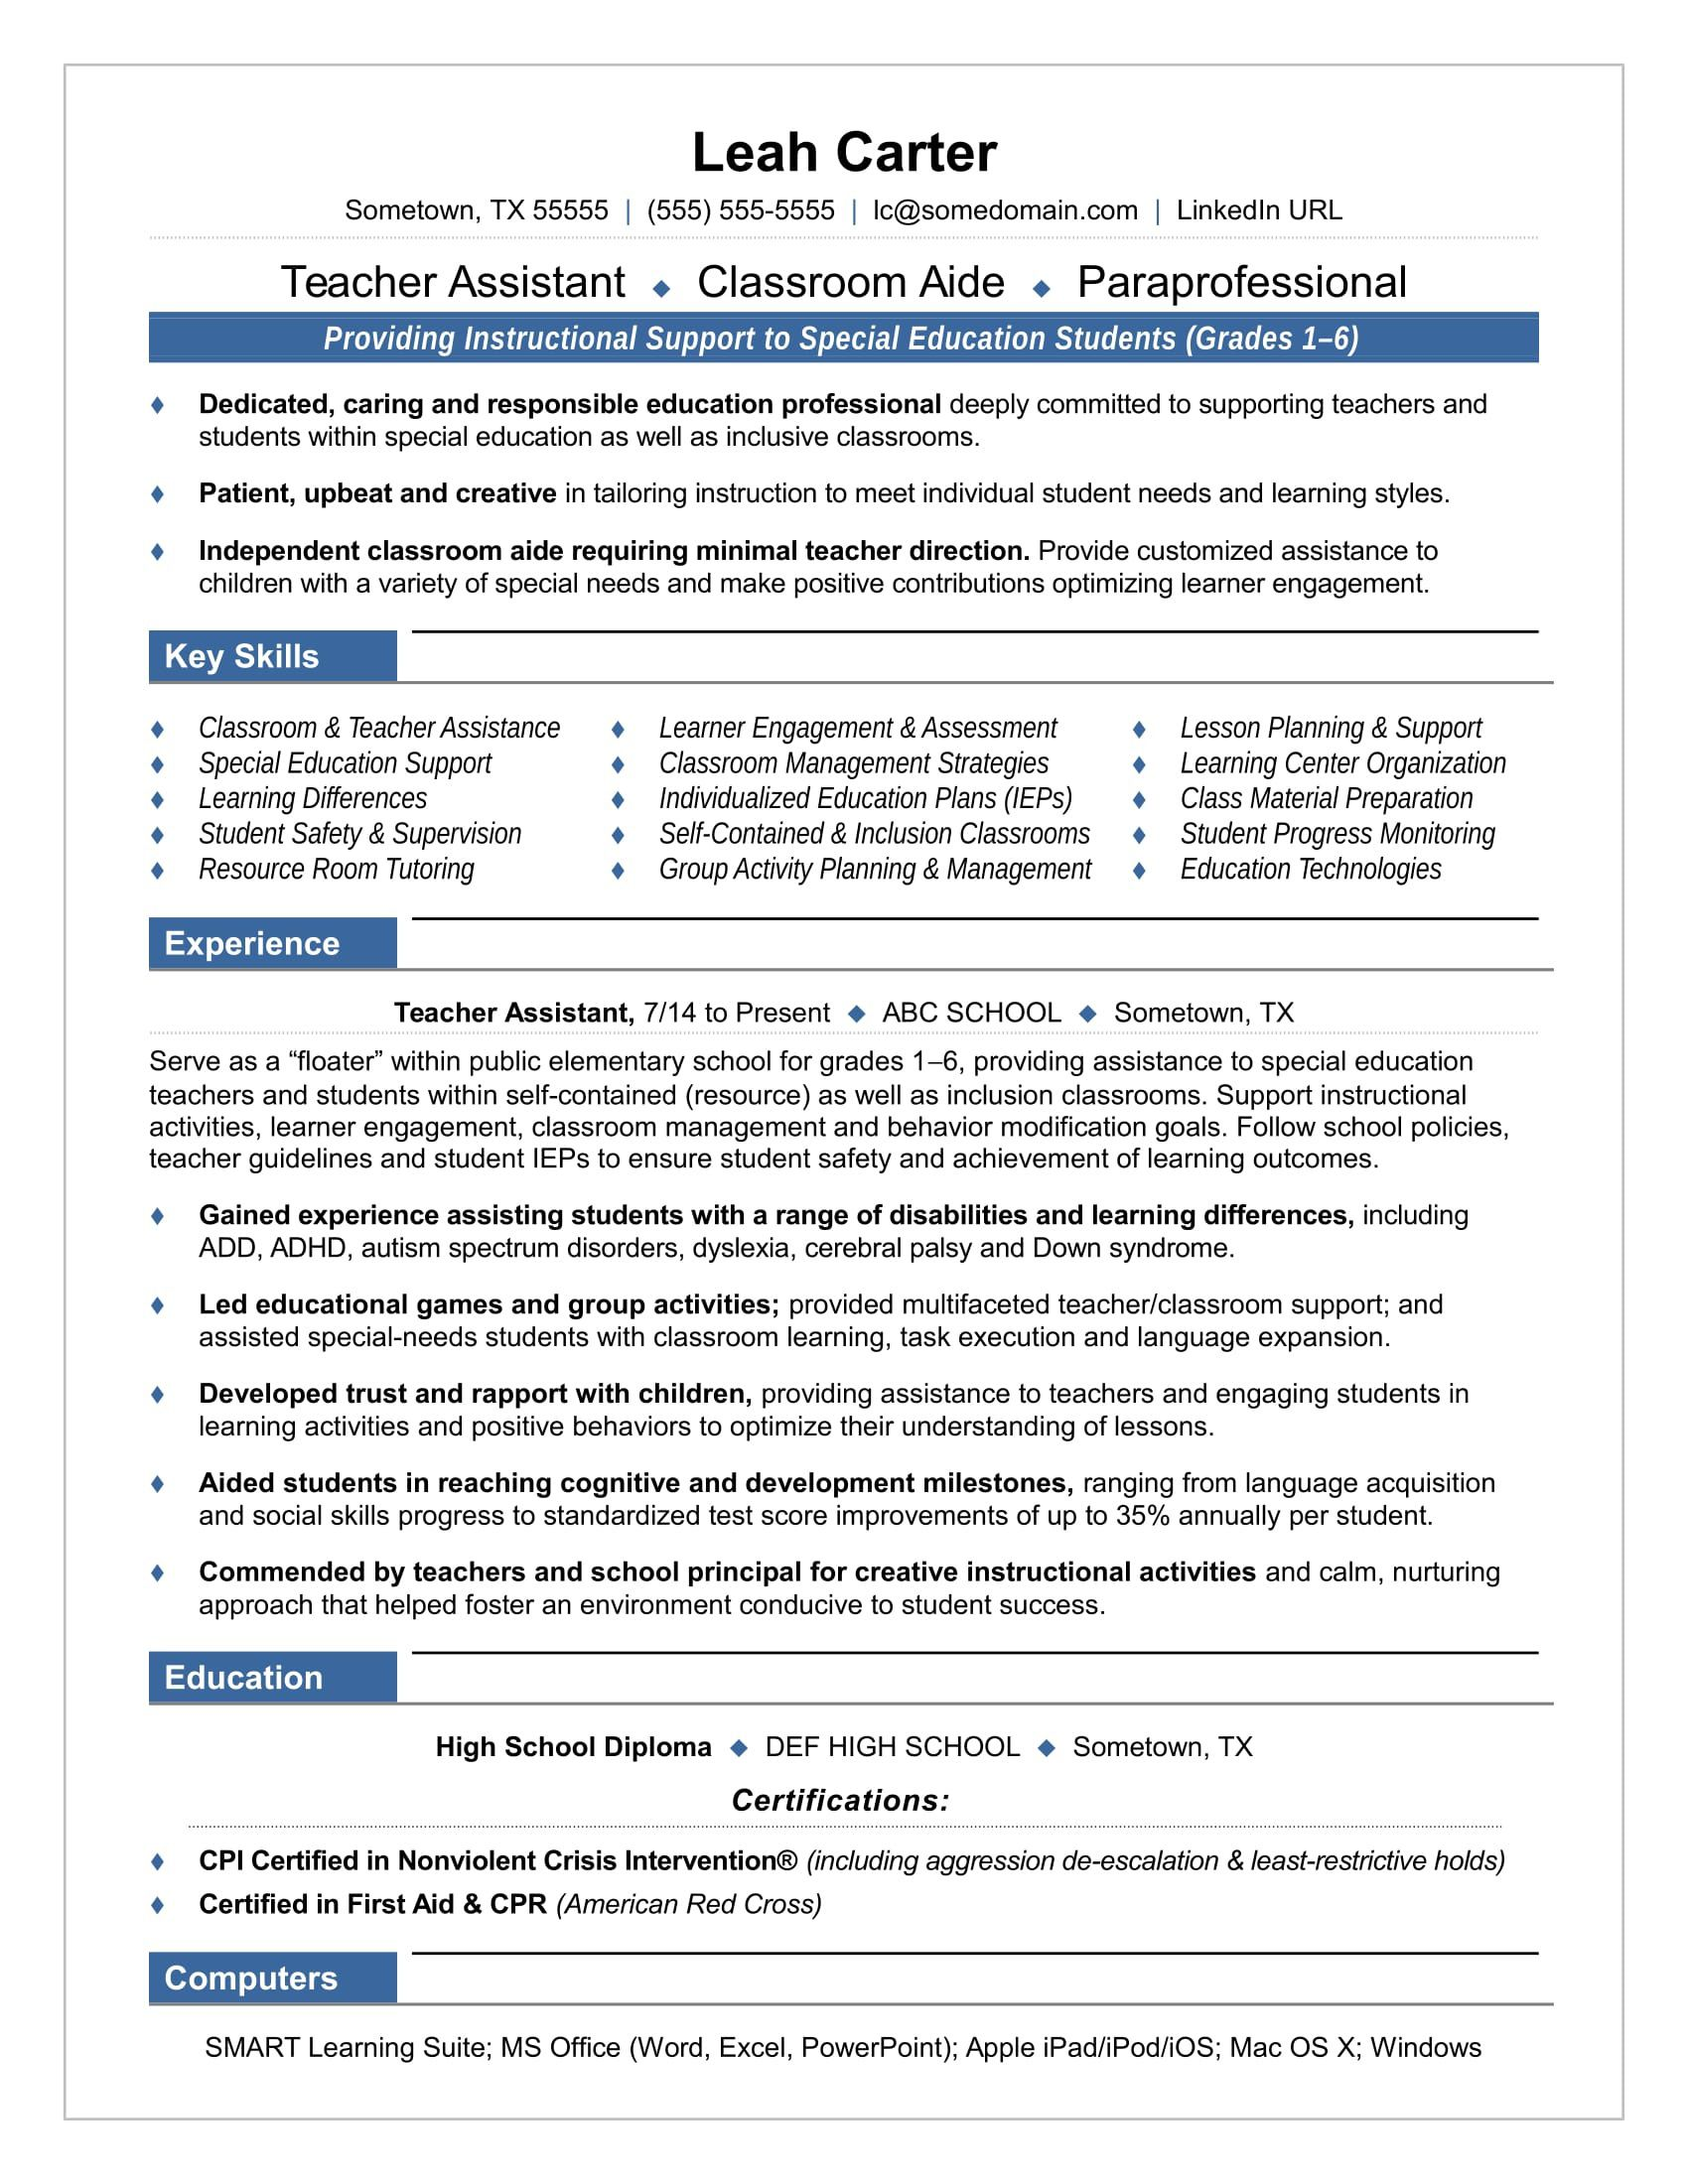 008 Unusual Good Resume For Teaching Job Sample  With Experience Pdf Fresher In IndiaFull